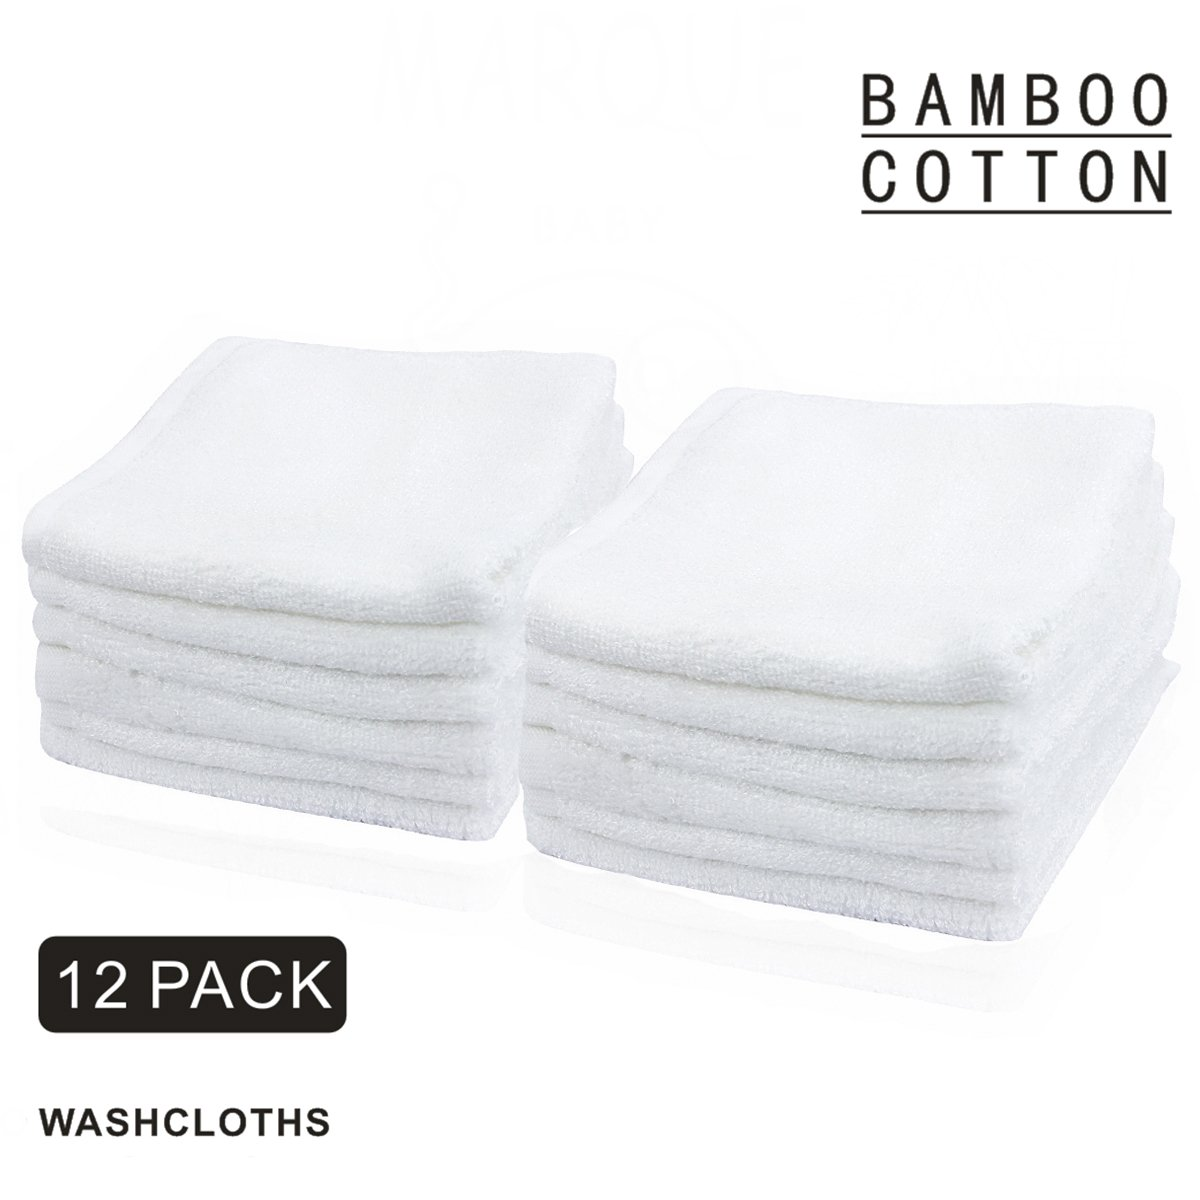 100% Organic Bamboo Cotton Baby Washcloths - 6pcs NO DYES Super Soft & Absorbent Bath Towels 10x10 Marque